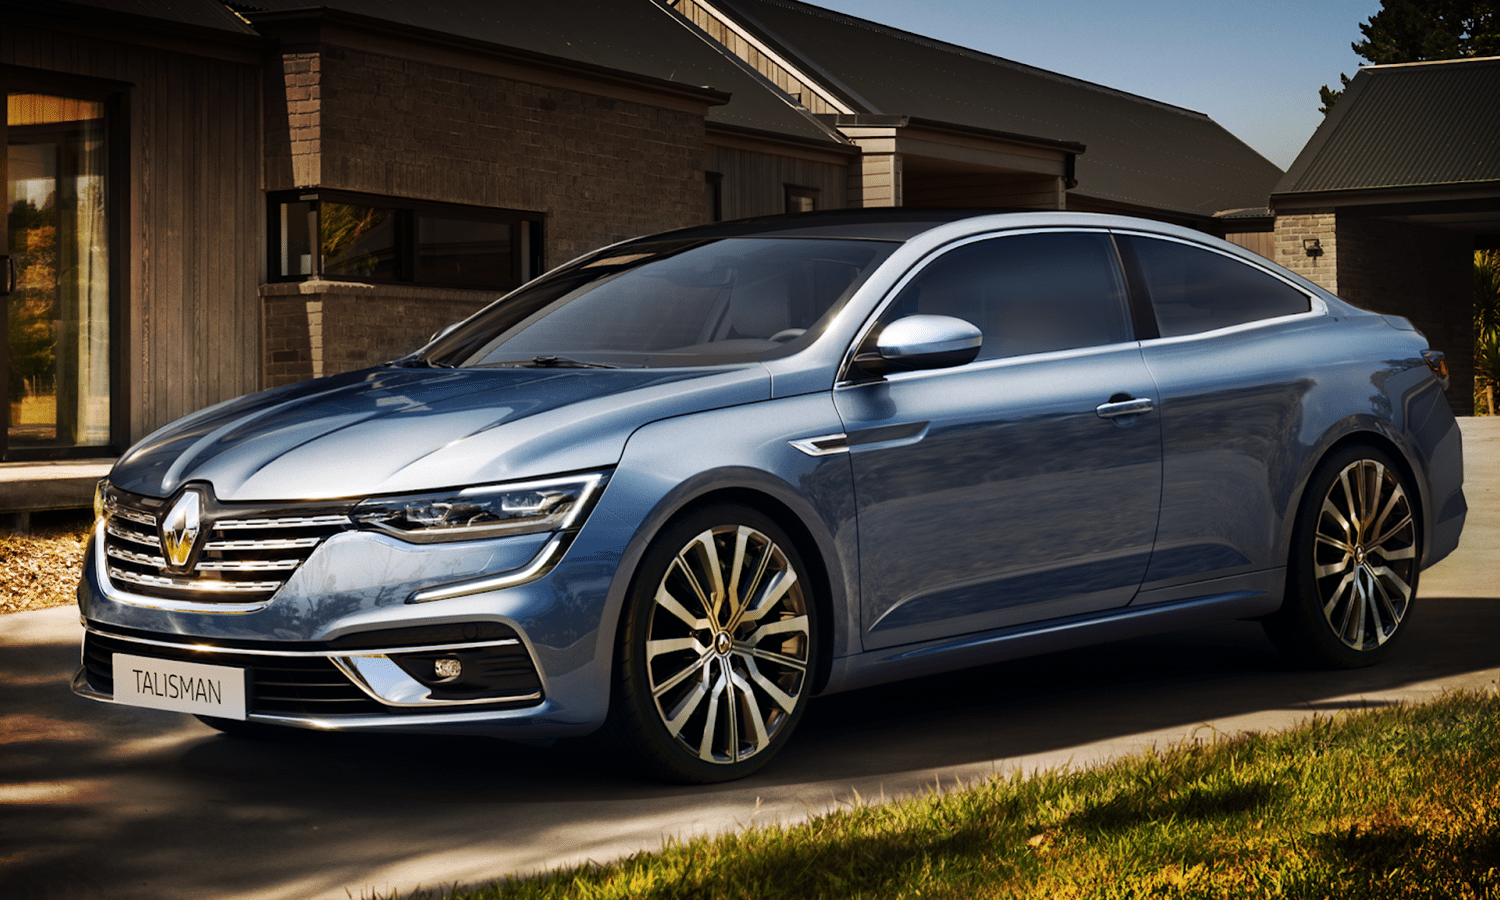 Renault Talisman Coupé recreación